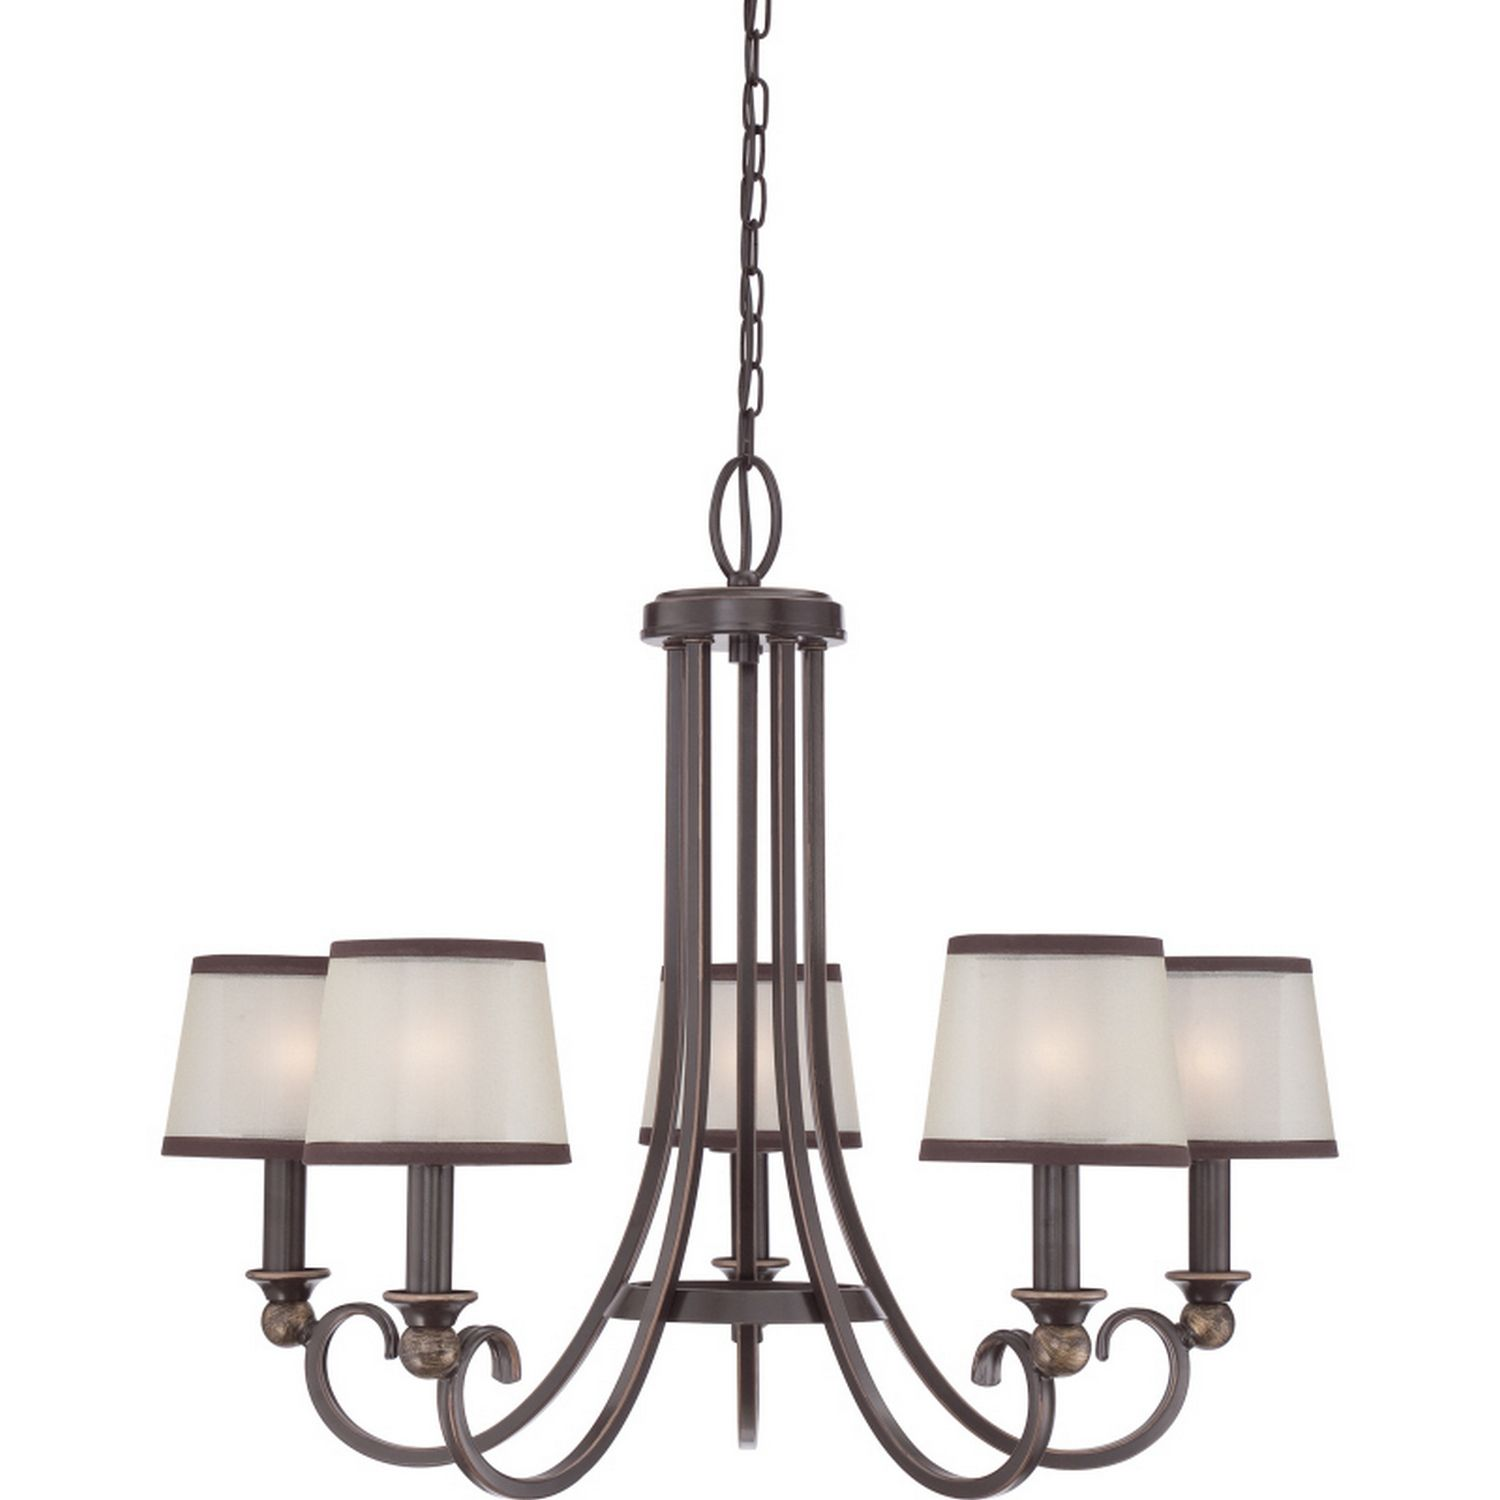 Five light chandelier manufacturerquoizel collection palmer five light chandelier manufacturerquoizel collection palmer product plr5005pn finish palladian arubaitofo Images